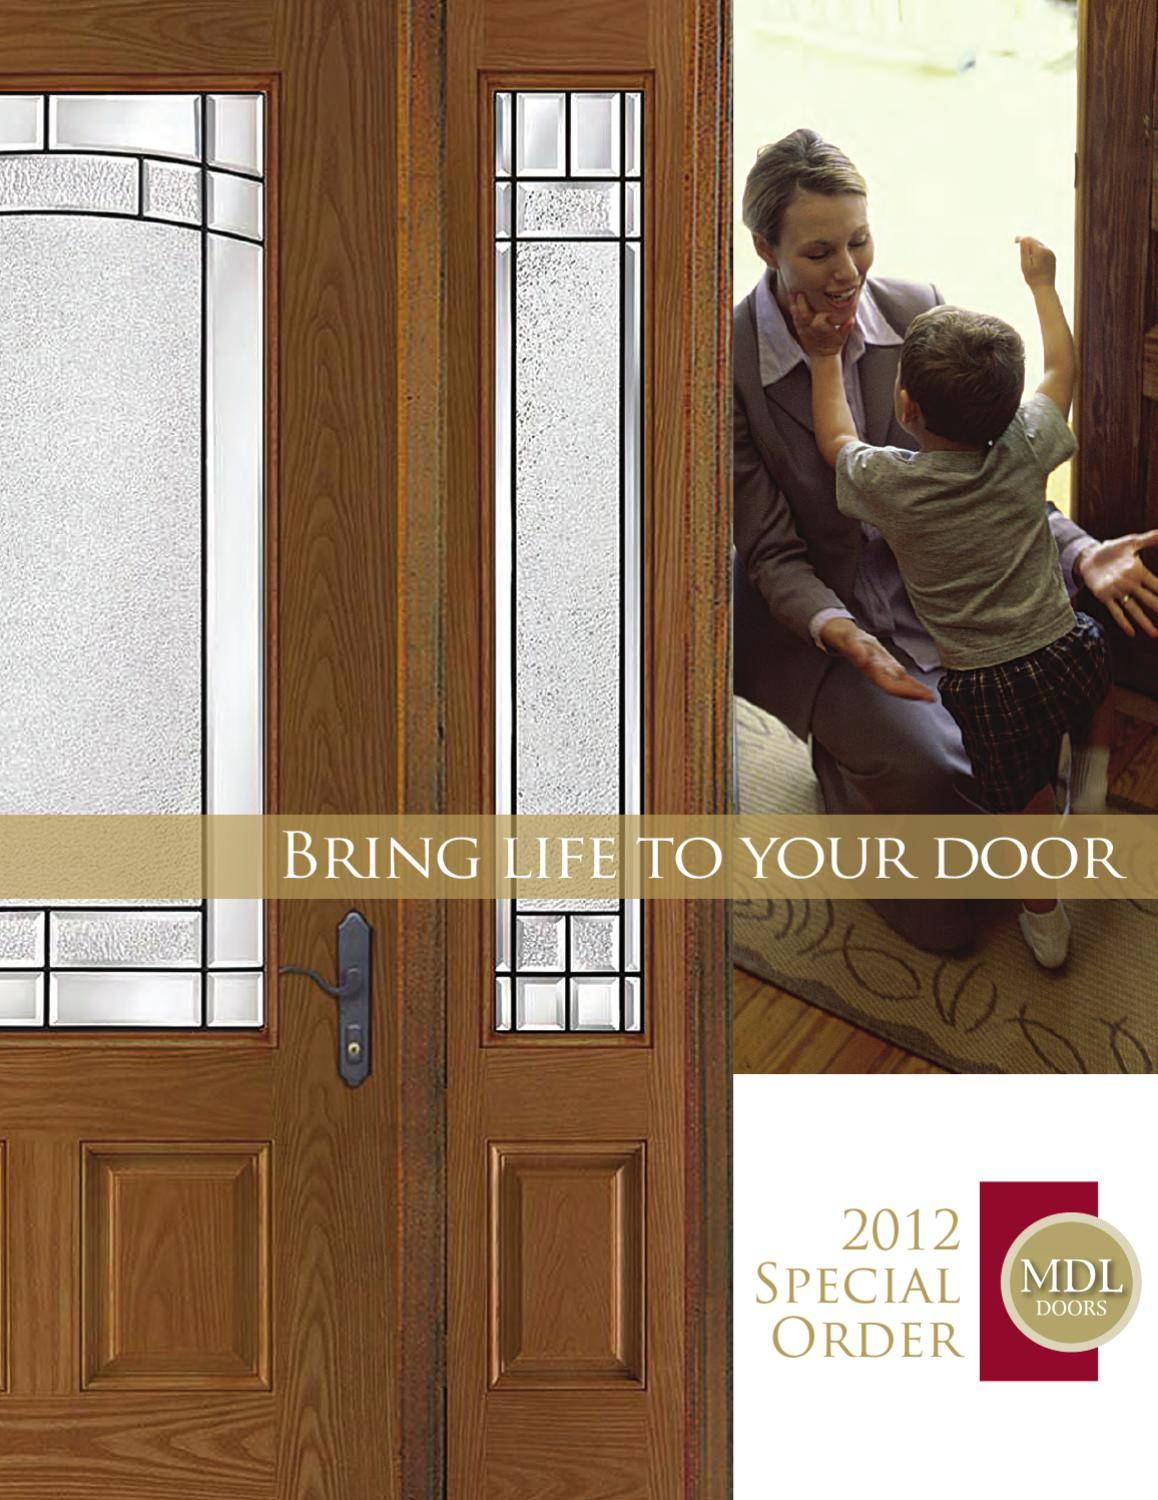 2012 special order by mdl doors issuu for Special order doors